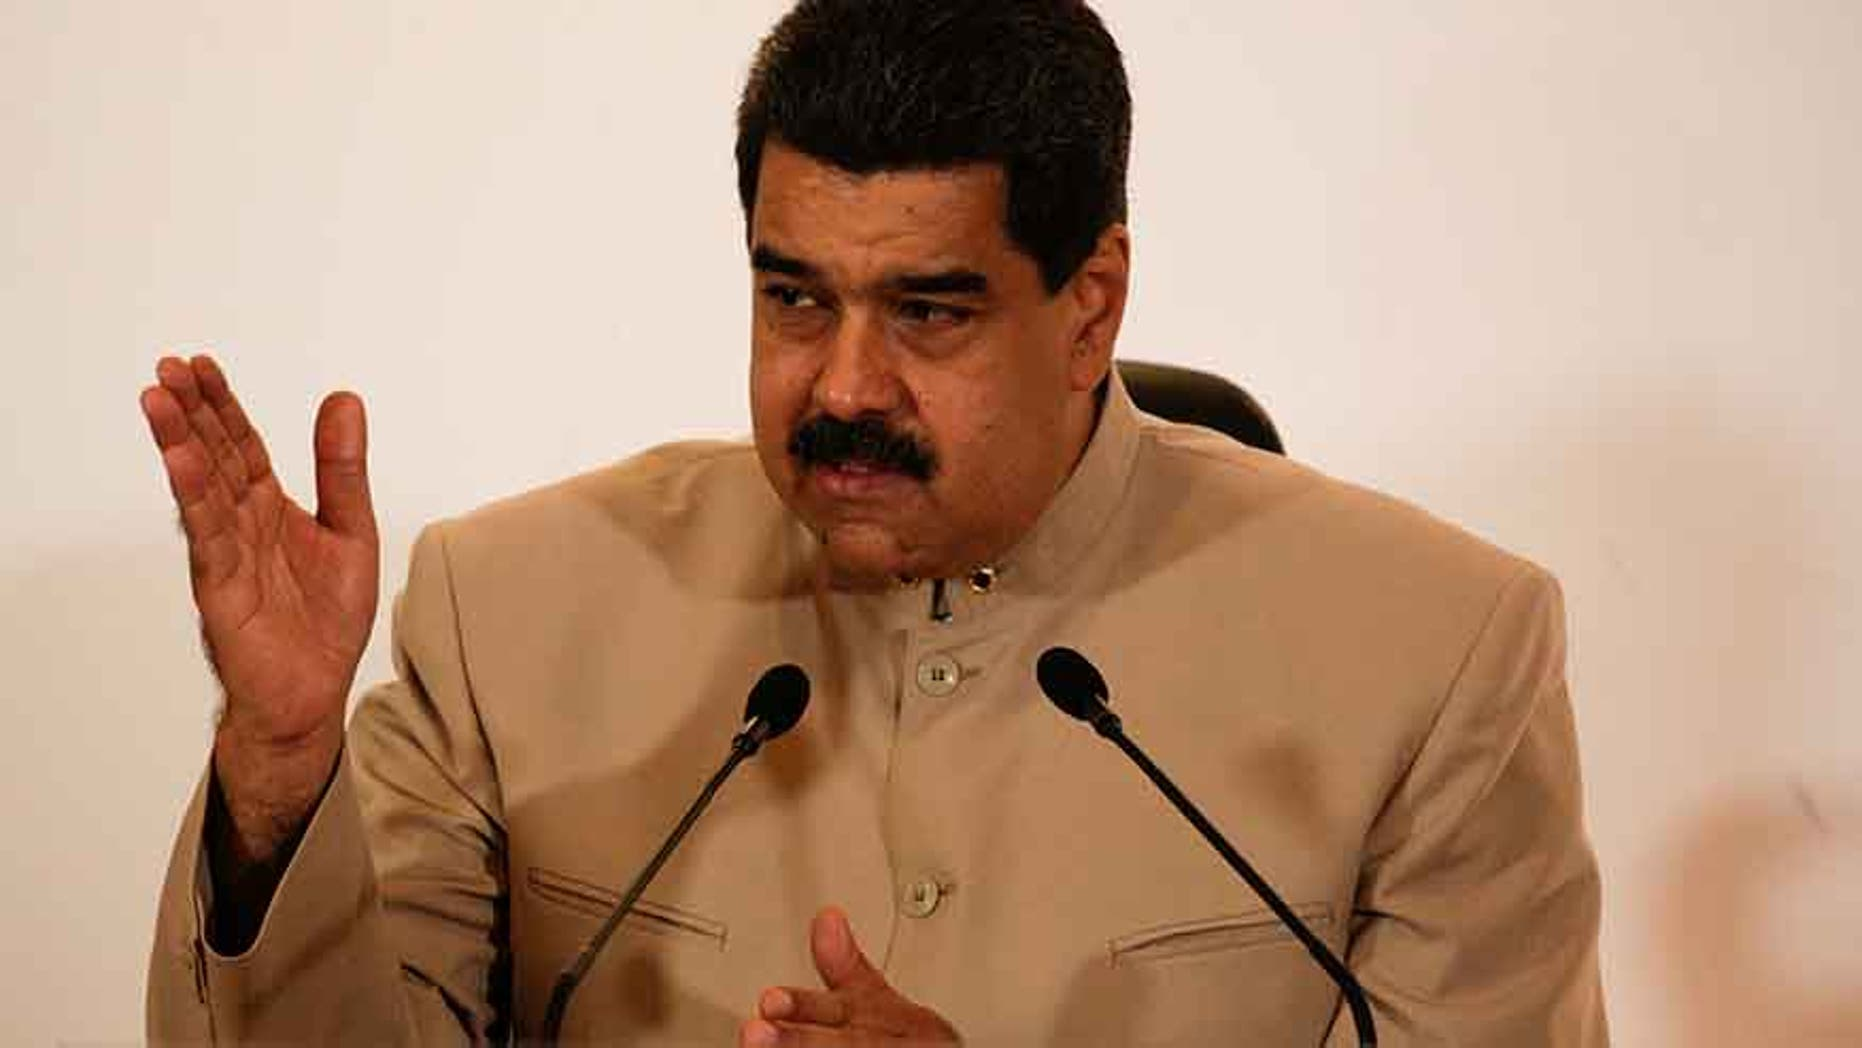 Venezuela's President Nicolas Maduro speaks during a meeting at the National Electoral Council (CNE) where he presented his proposal to set up a National Constituent Assembly, in Caracas, Venezuela May 3, 2017.